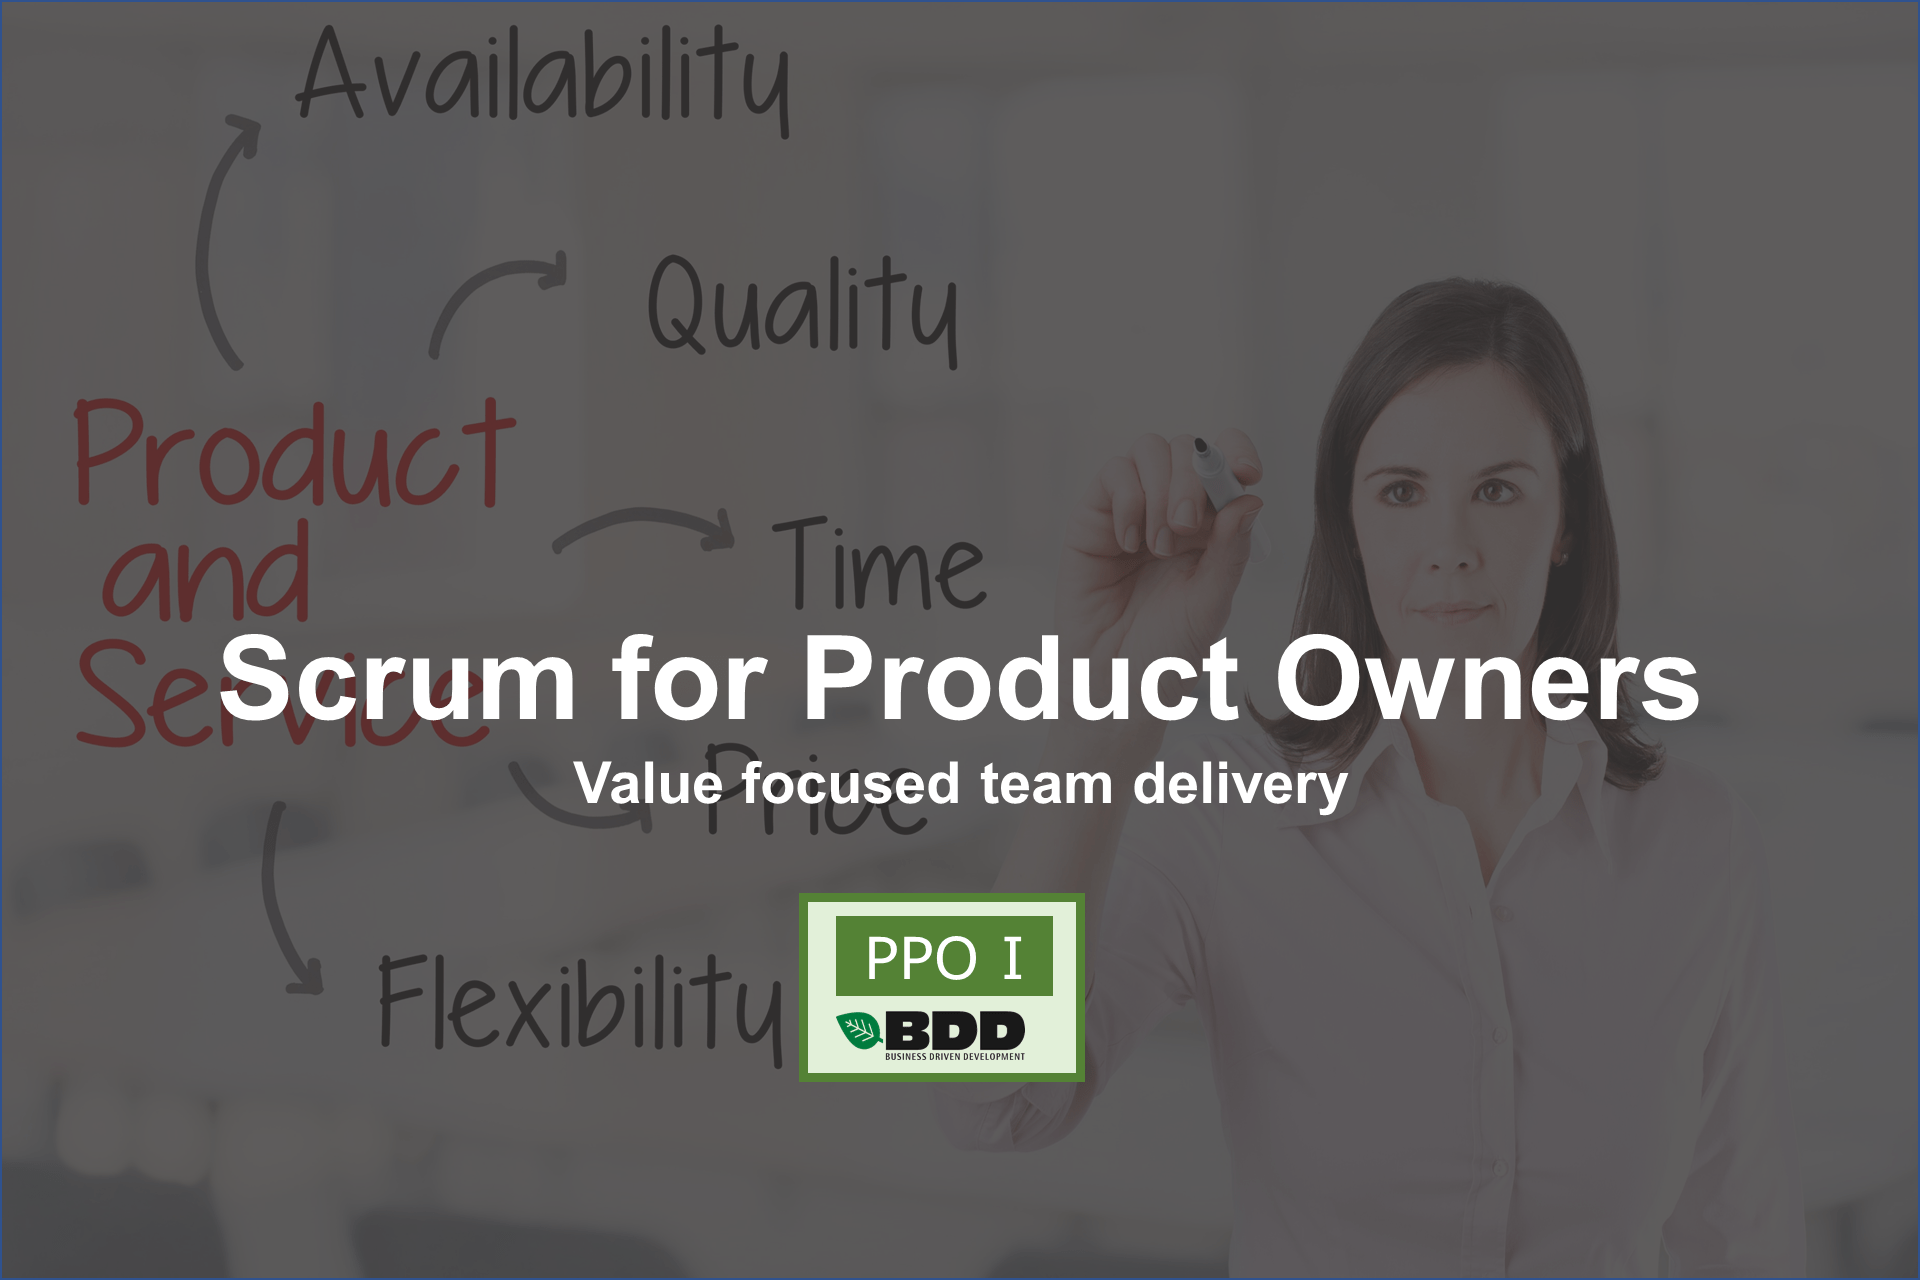 Scrum for Product Owners